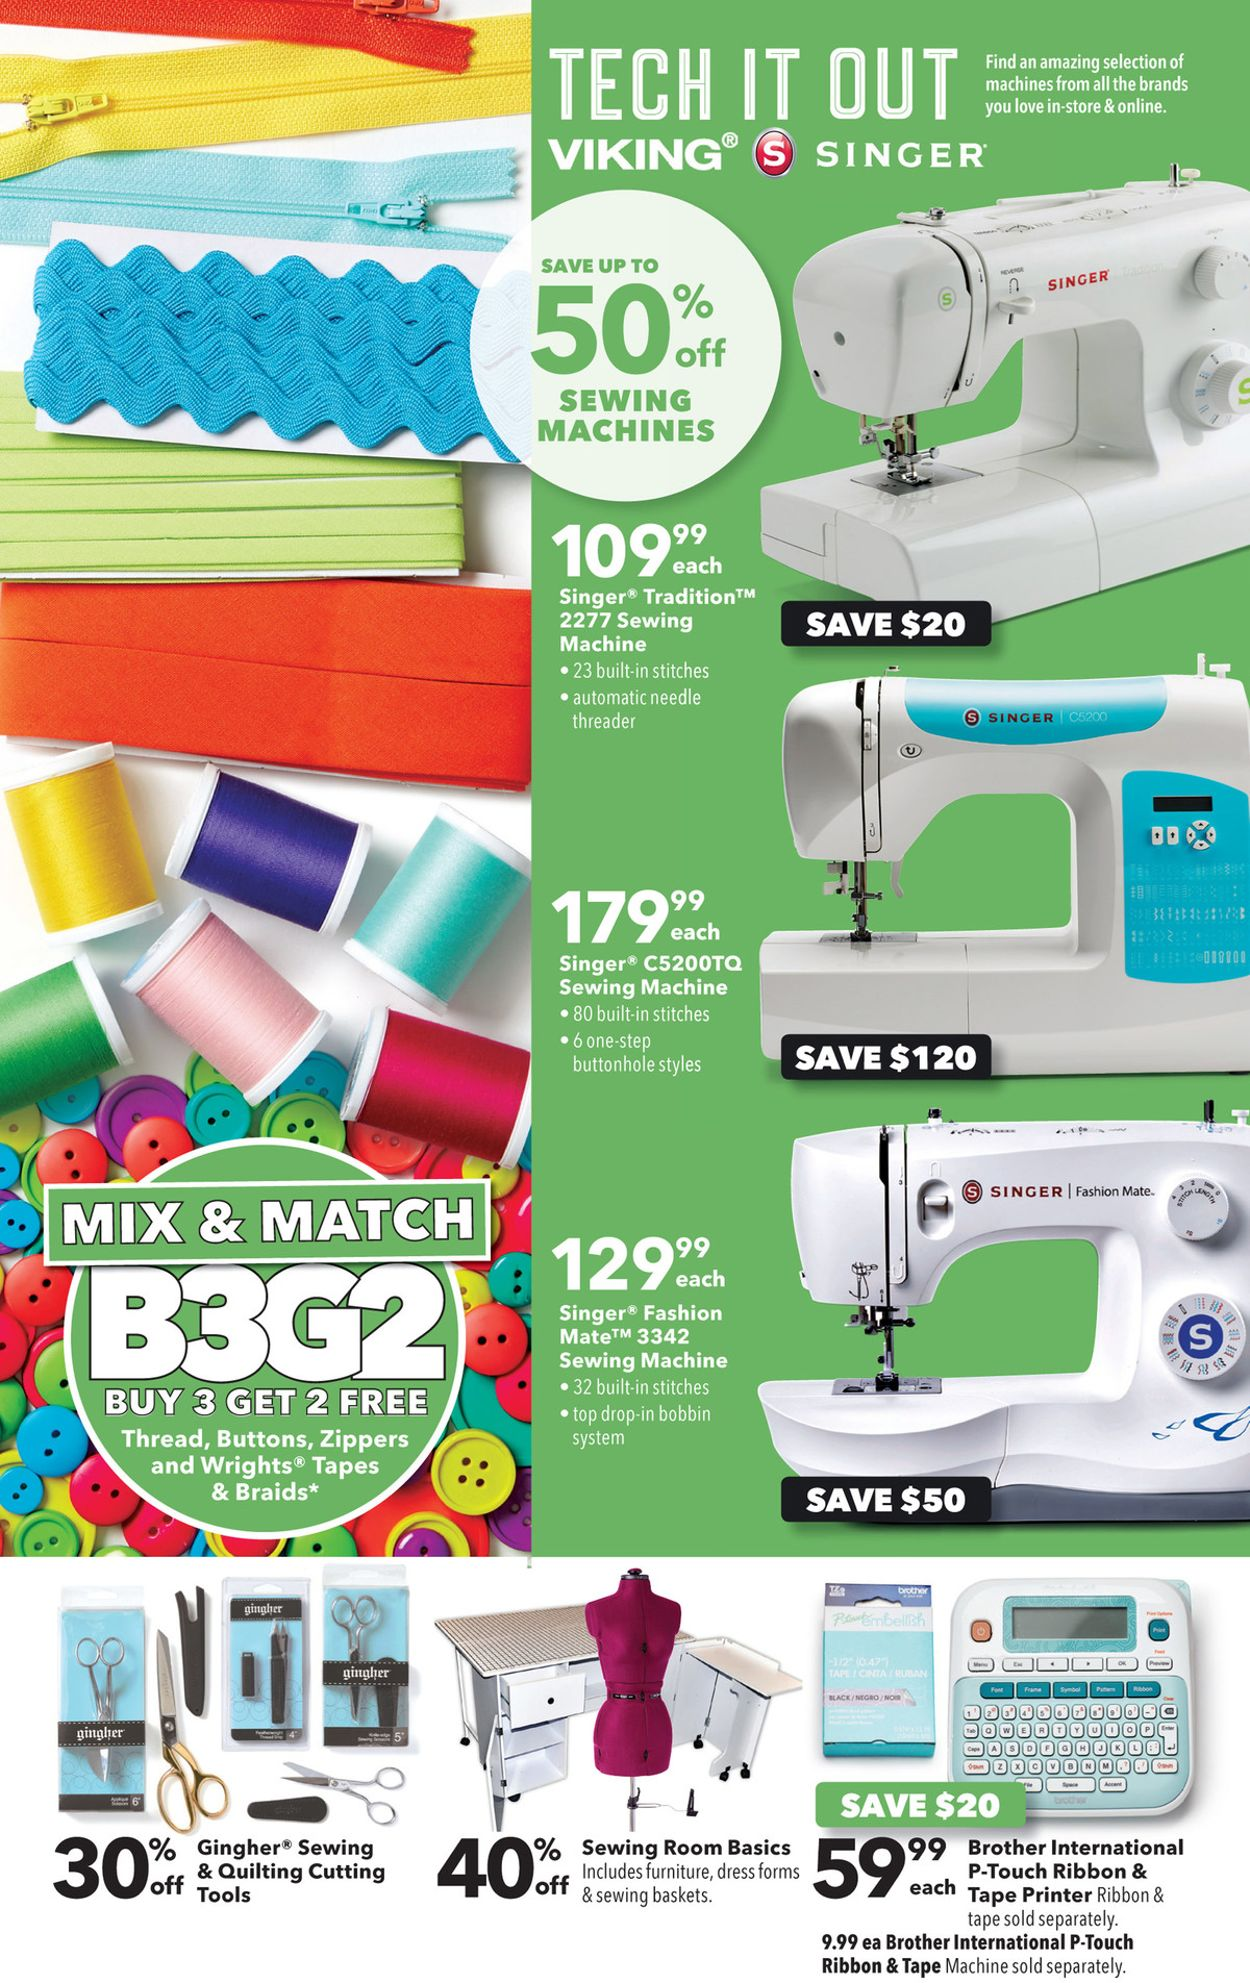 Joann Sewing Machines : joann, sewing, machines, Jo-Ann, Current, Weekly, 02/13, 02/26/2020, Frequent-ads.com